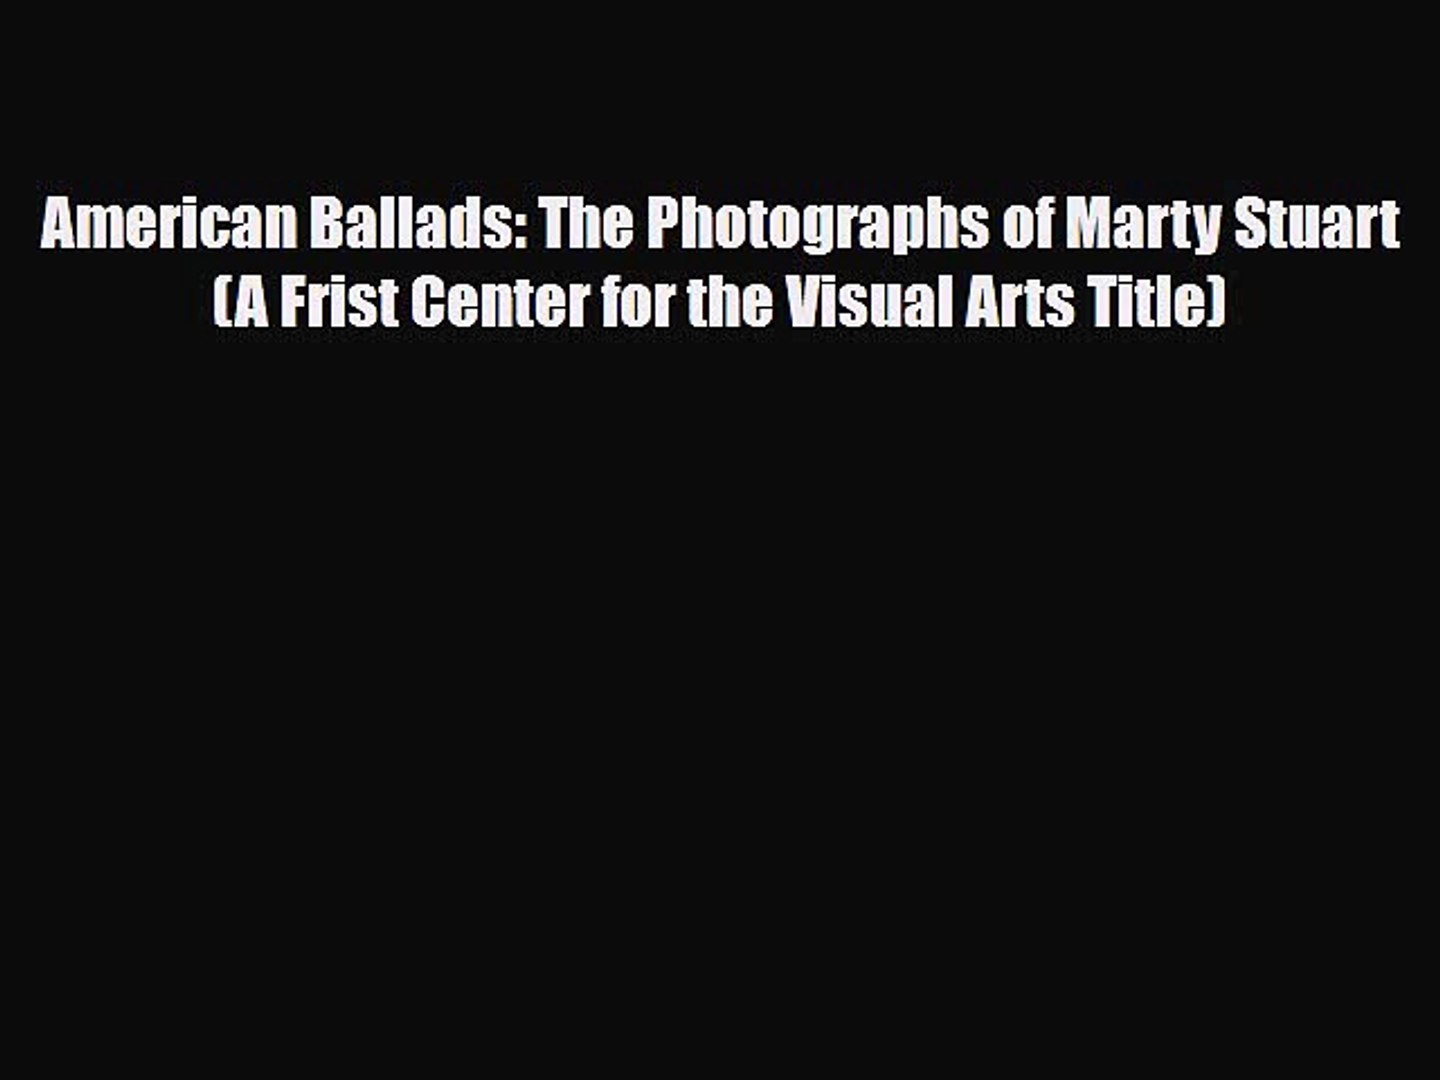 [PDF Download] American Ballads: The Photographs of Marty Stuart (A Frist Center for the Visual